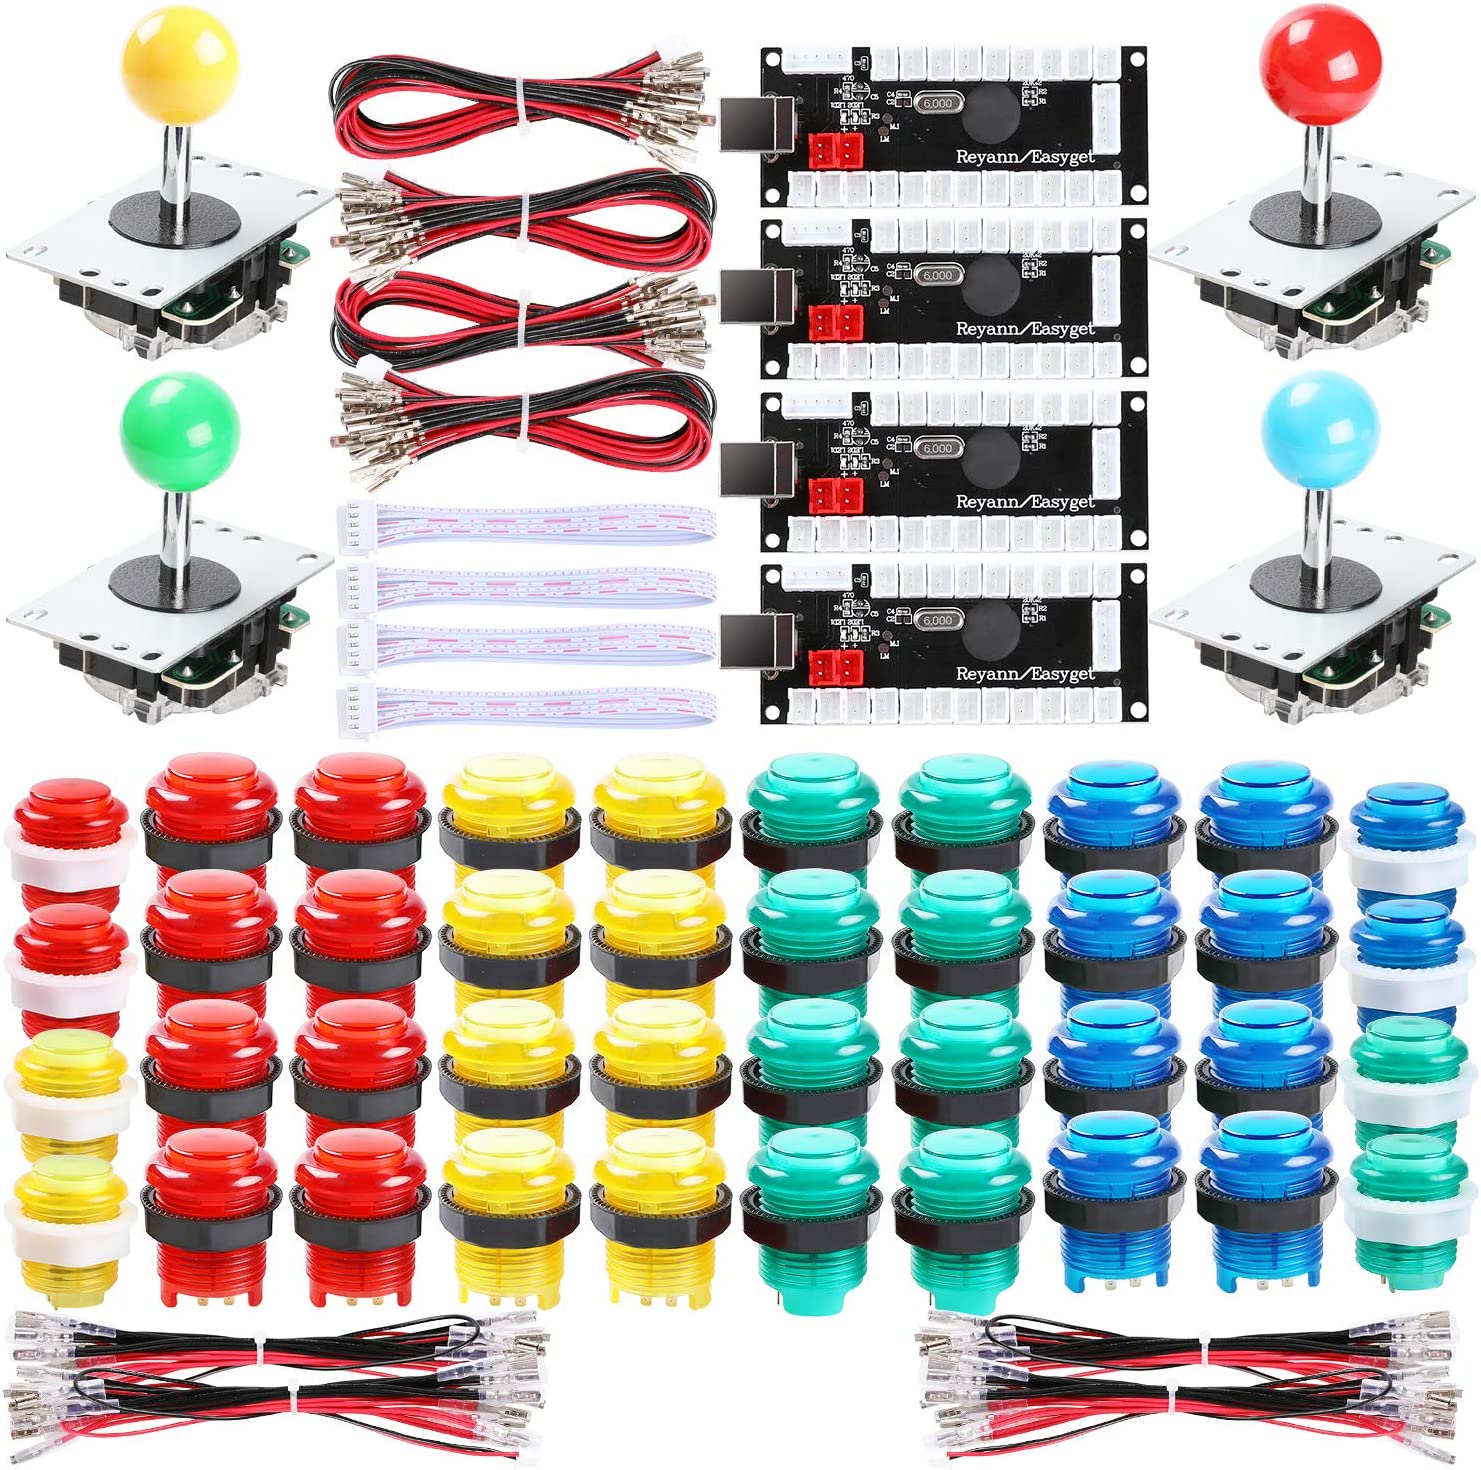 20x led Arcade Button Red/&Blue Hikig 2 Player led Arcade DIY kit 2X joysticks